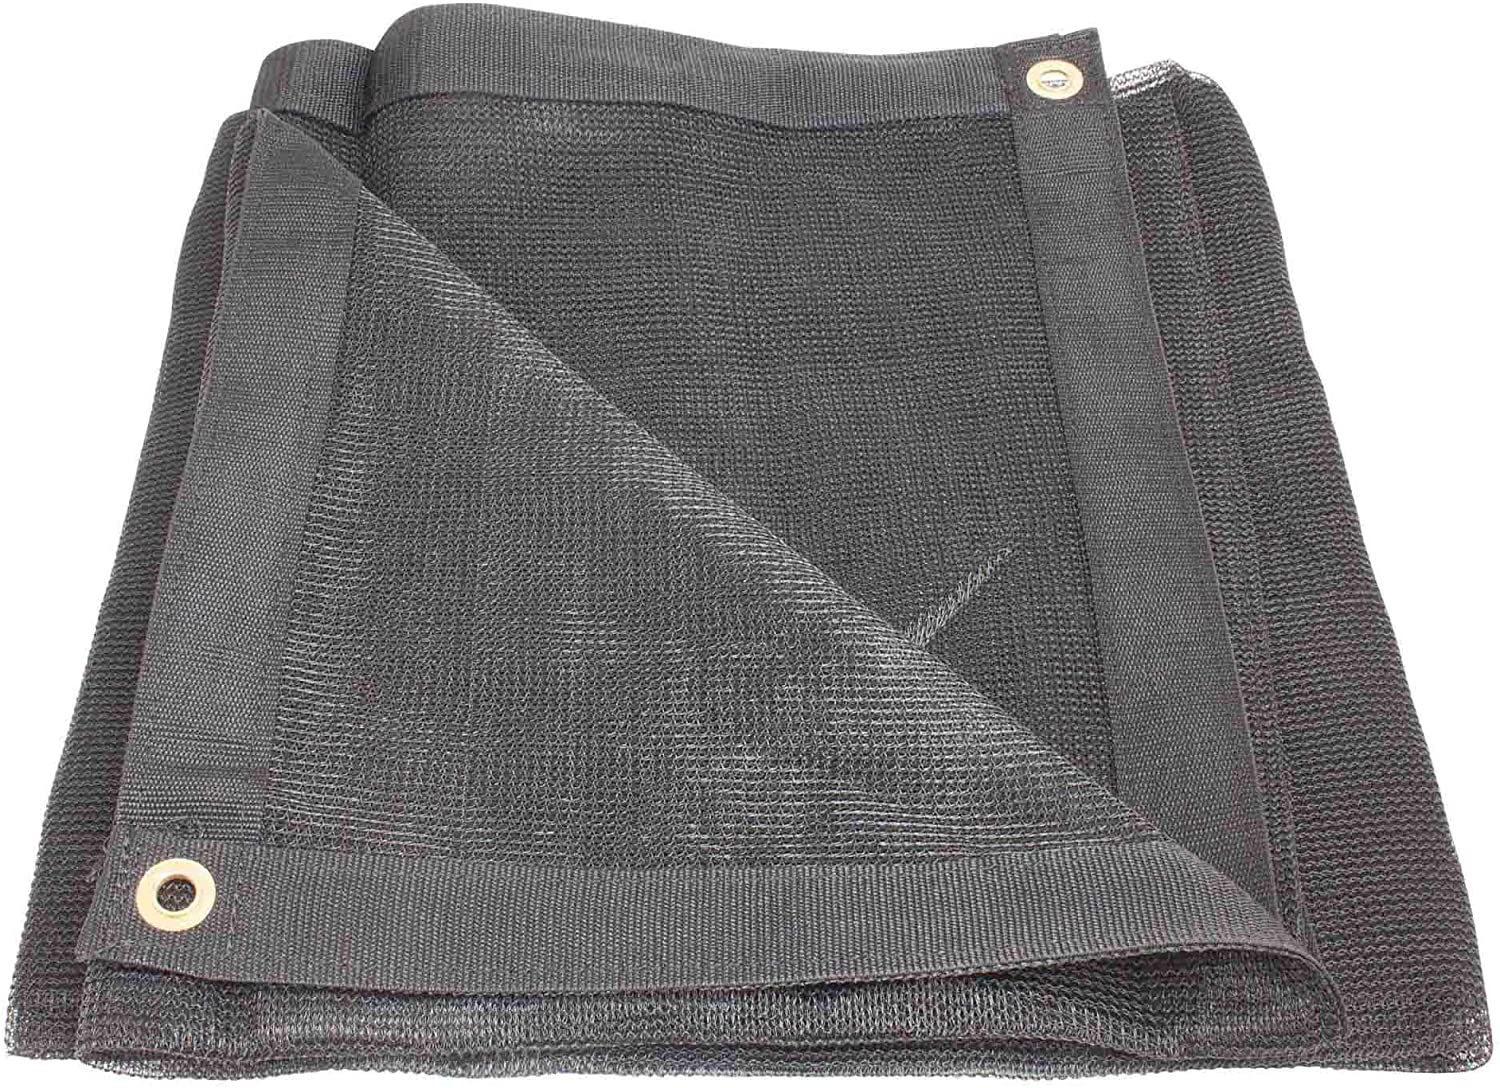 16' x 20' Black 70% Shade Mesh Tarps with Grommets ROLL-Off